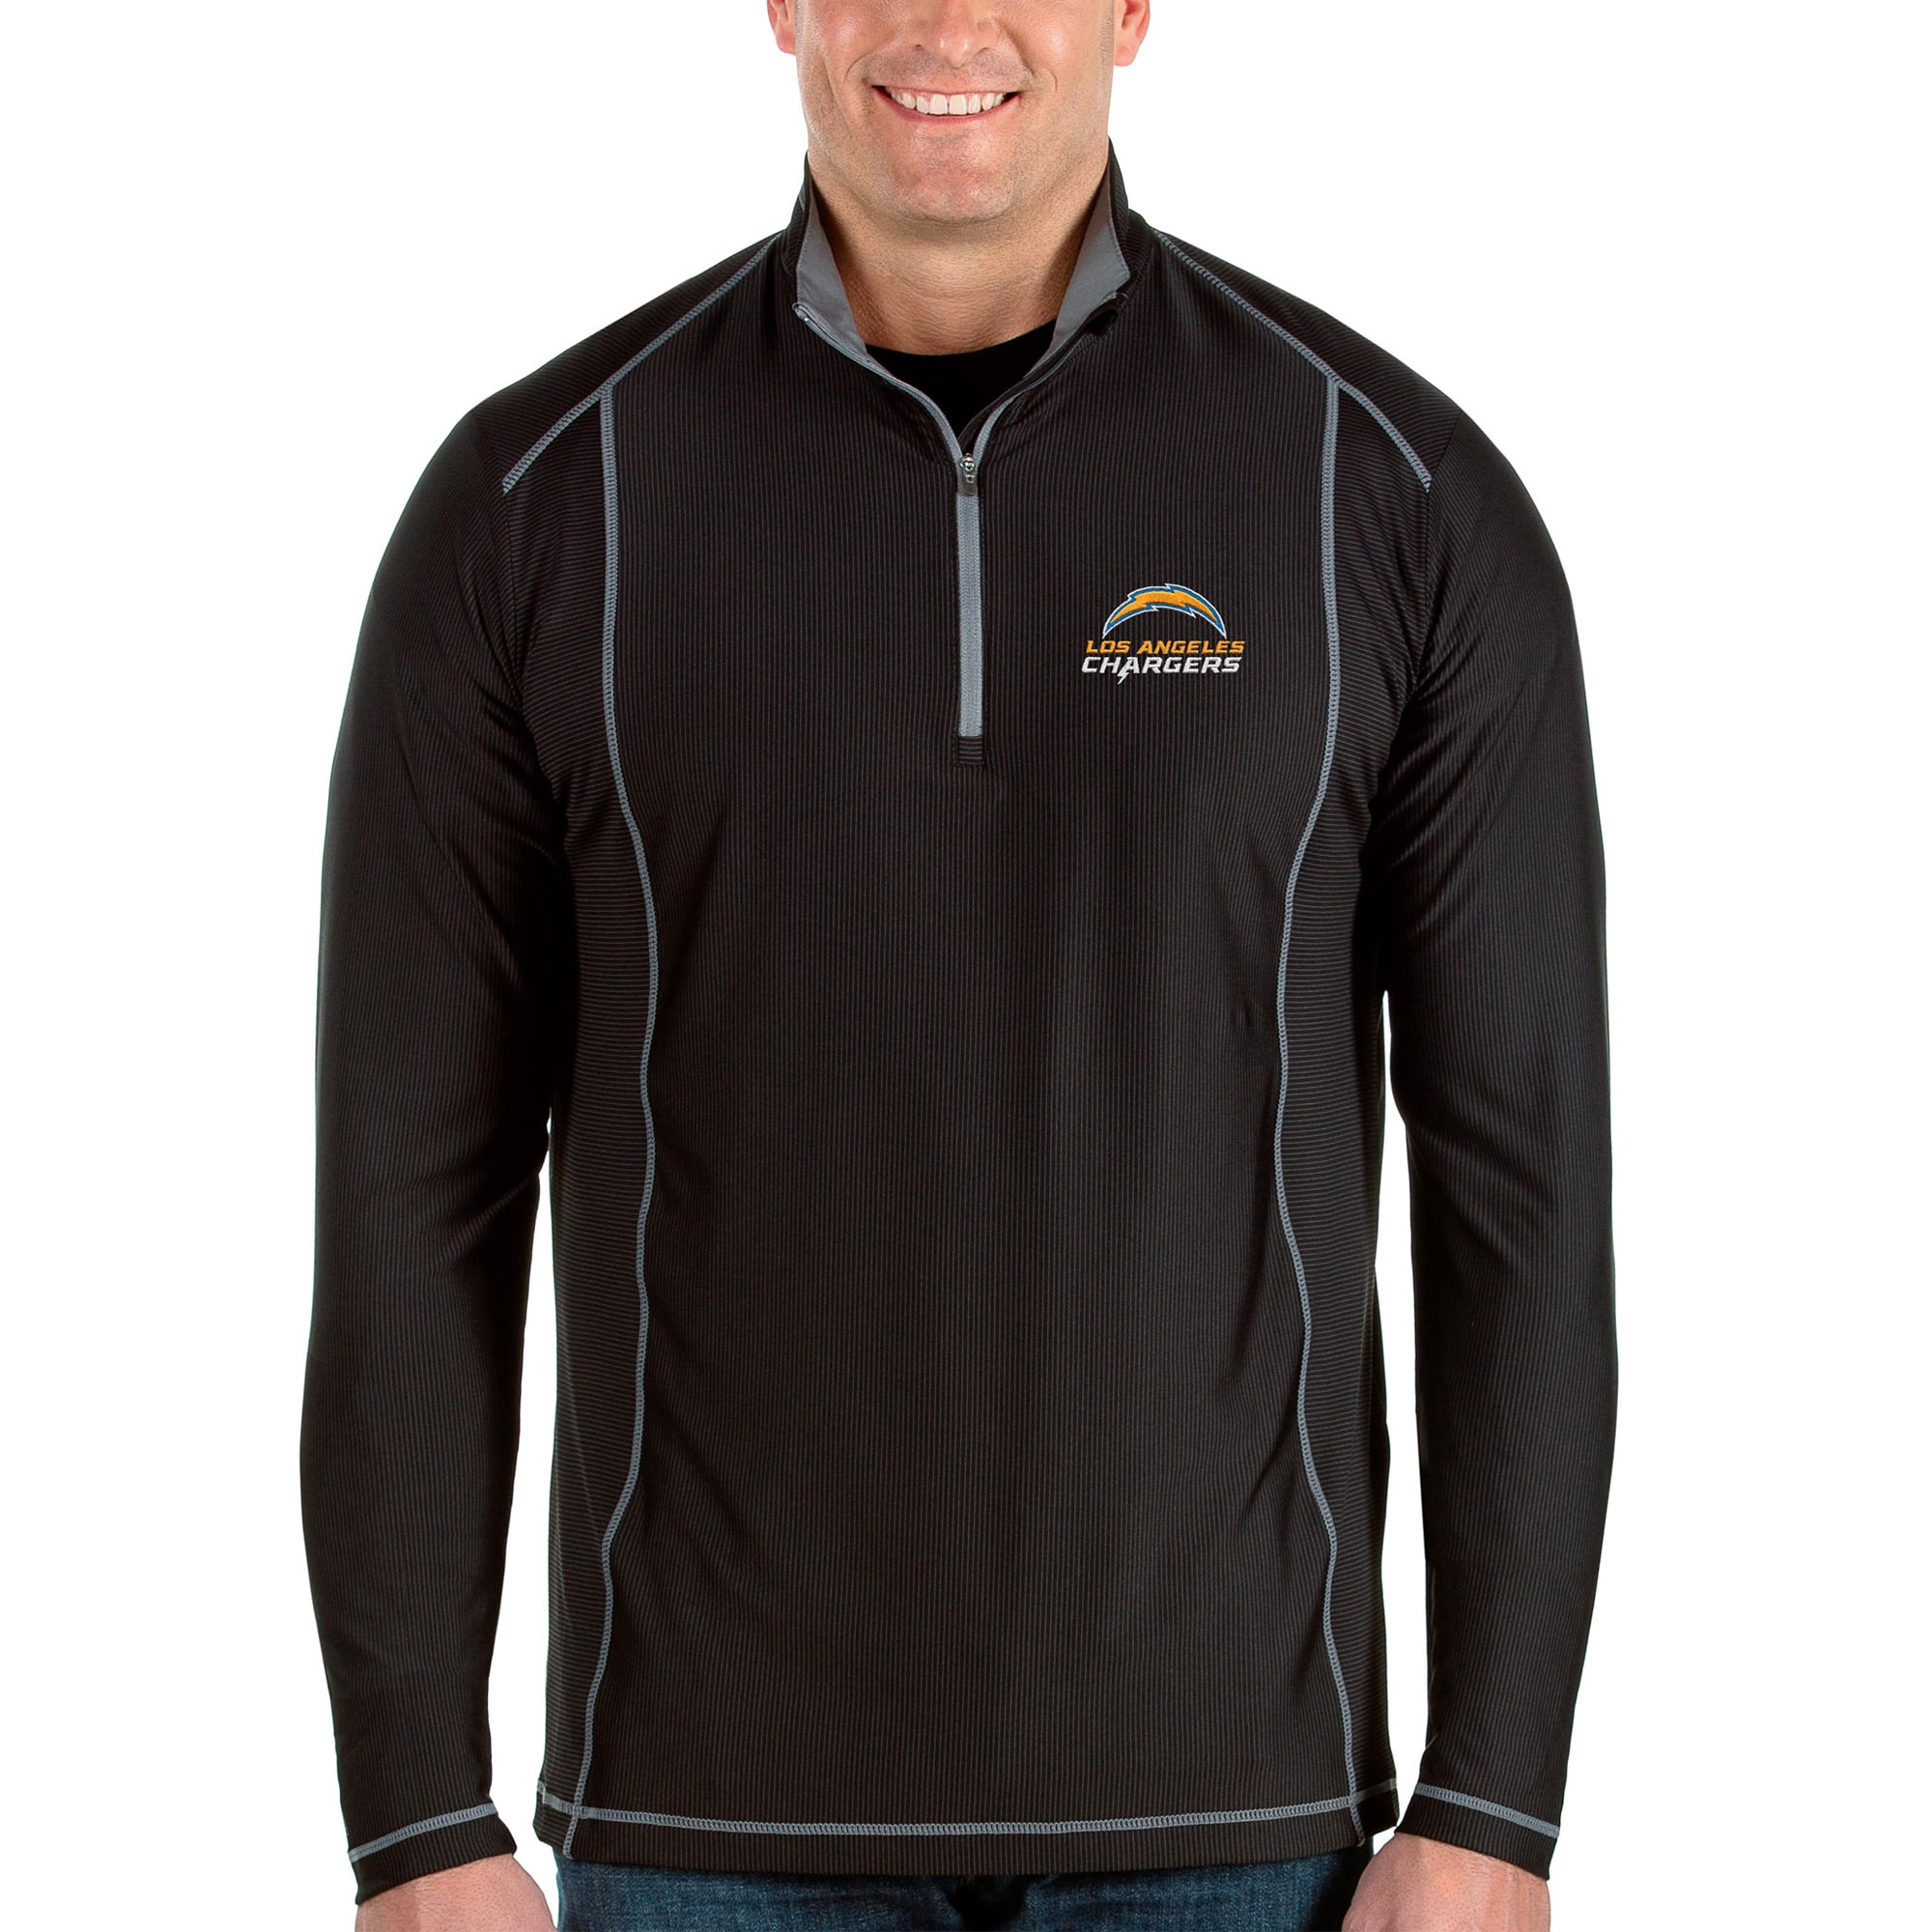 Los Angeles Chargers Antigua Big & Tall Tempo Half-Zip Pullover Jacket - Black/Steel